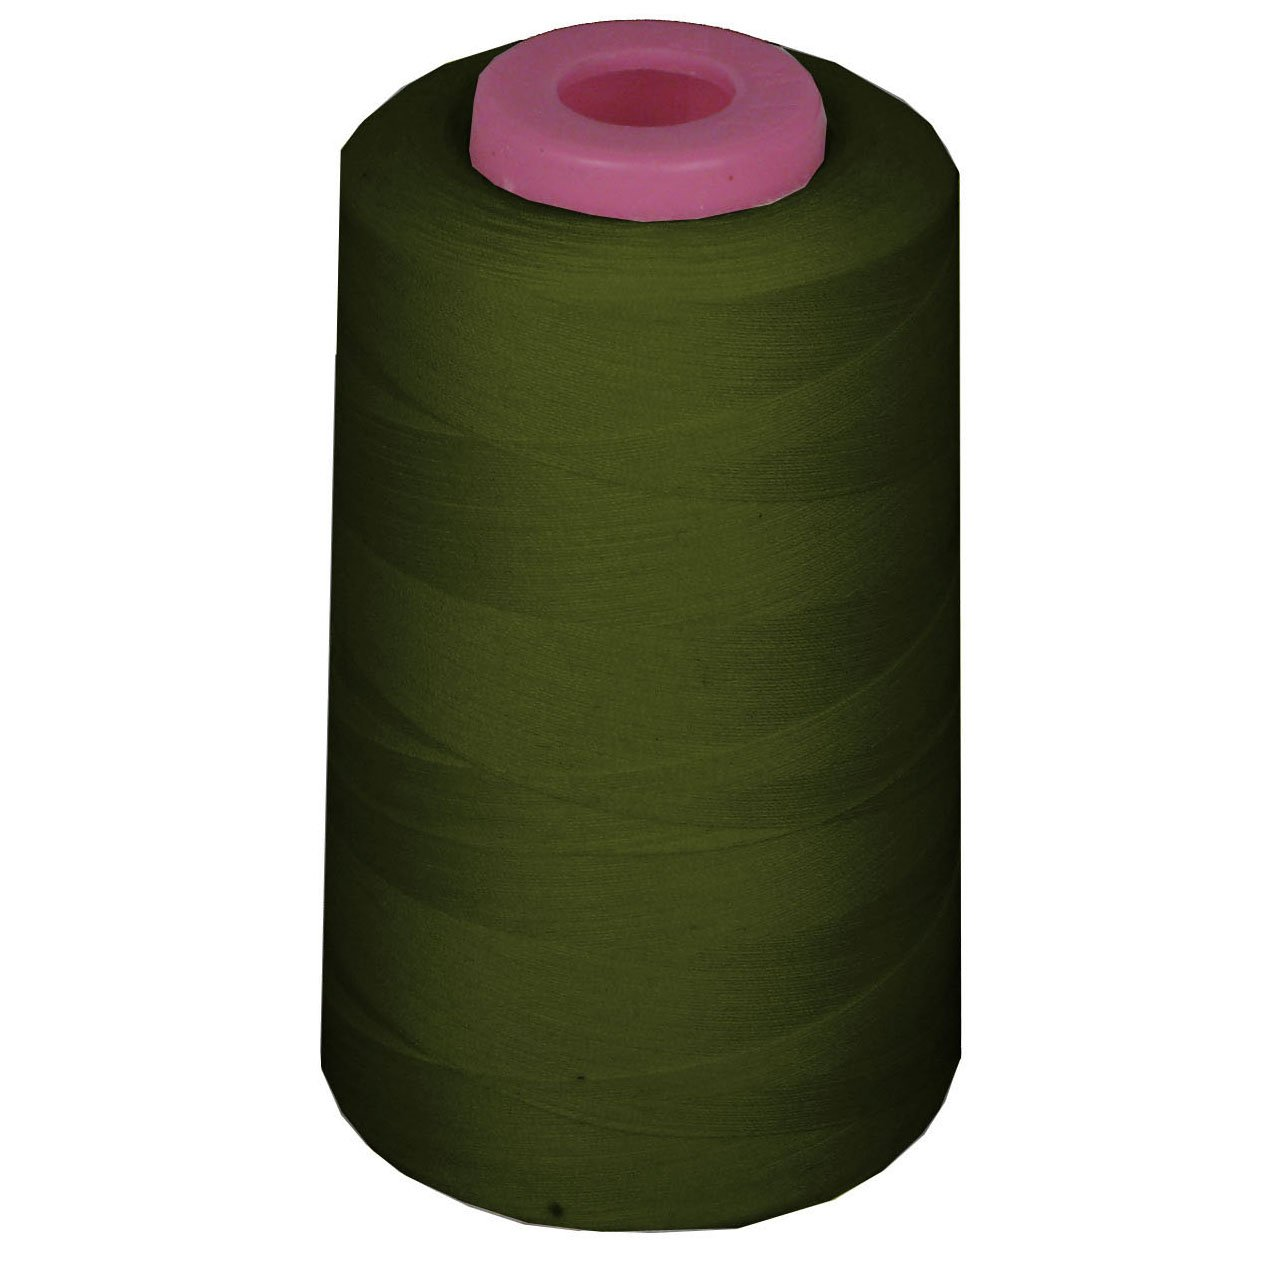 LA Linen Serger Cone Thread 100% Spool Polyester / 6000 Yards / Olive Green.